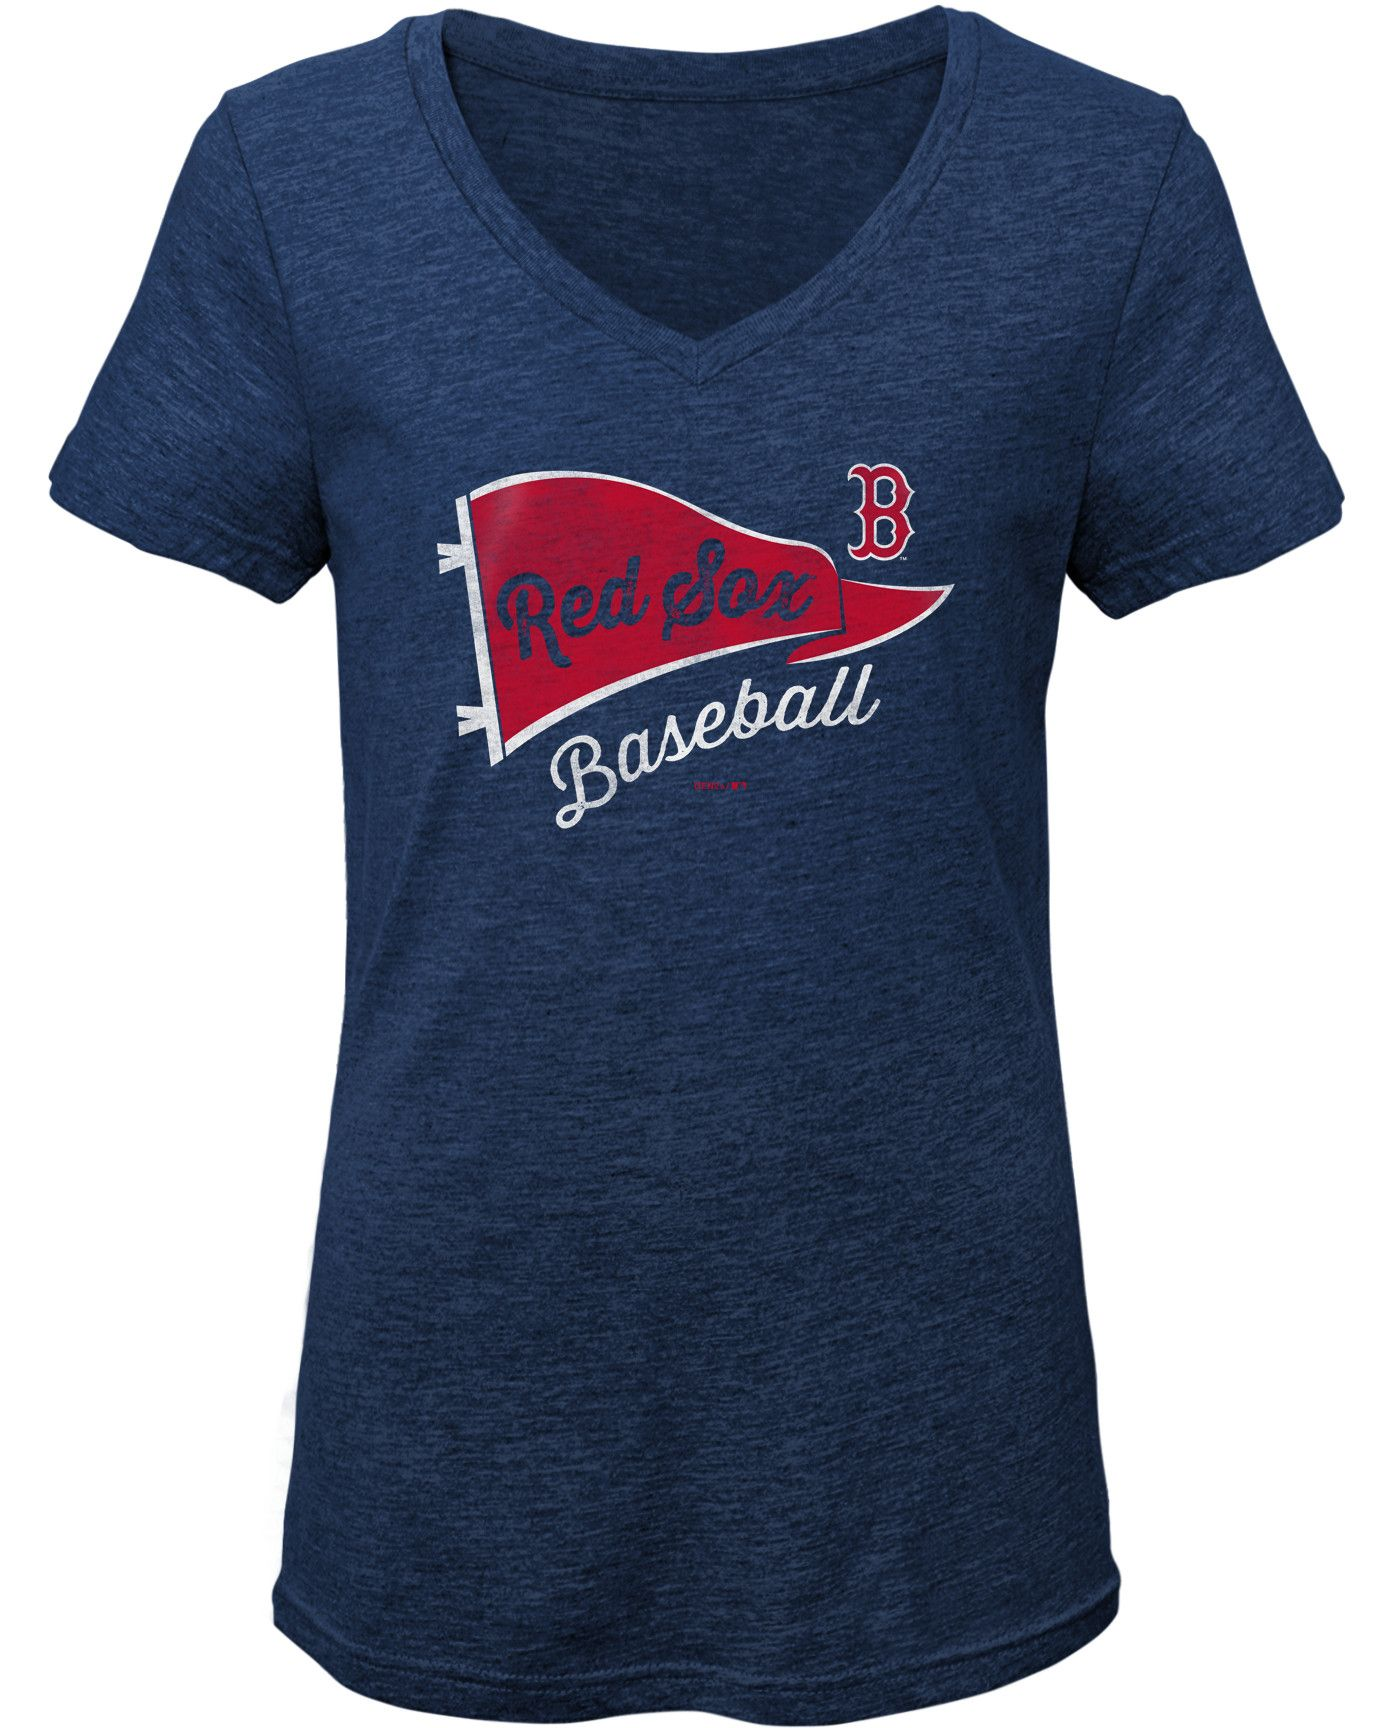 Gen2 Youth Girls' Boston Red Sox Tri-Blend V-Neck T-Shirt